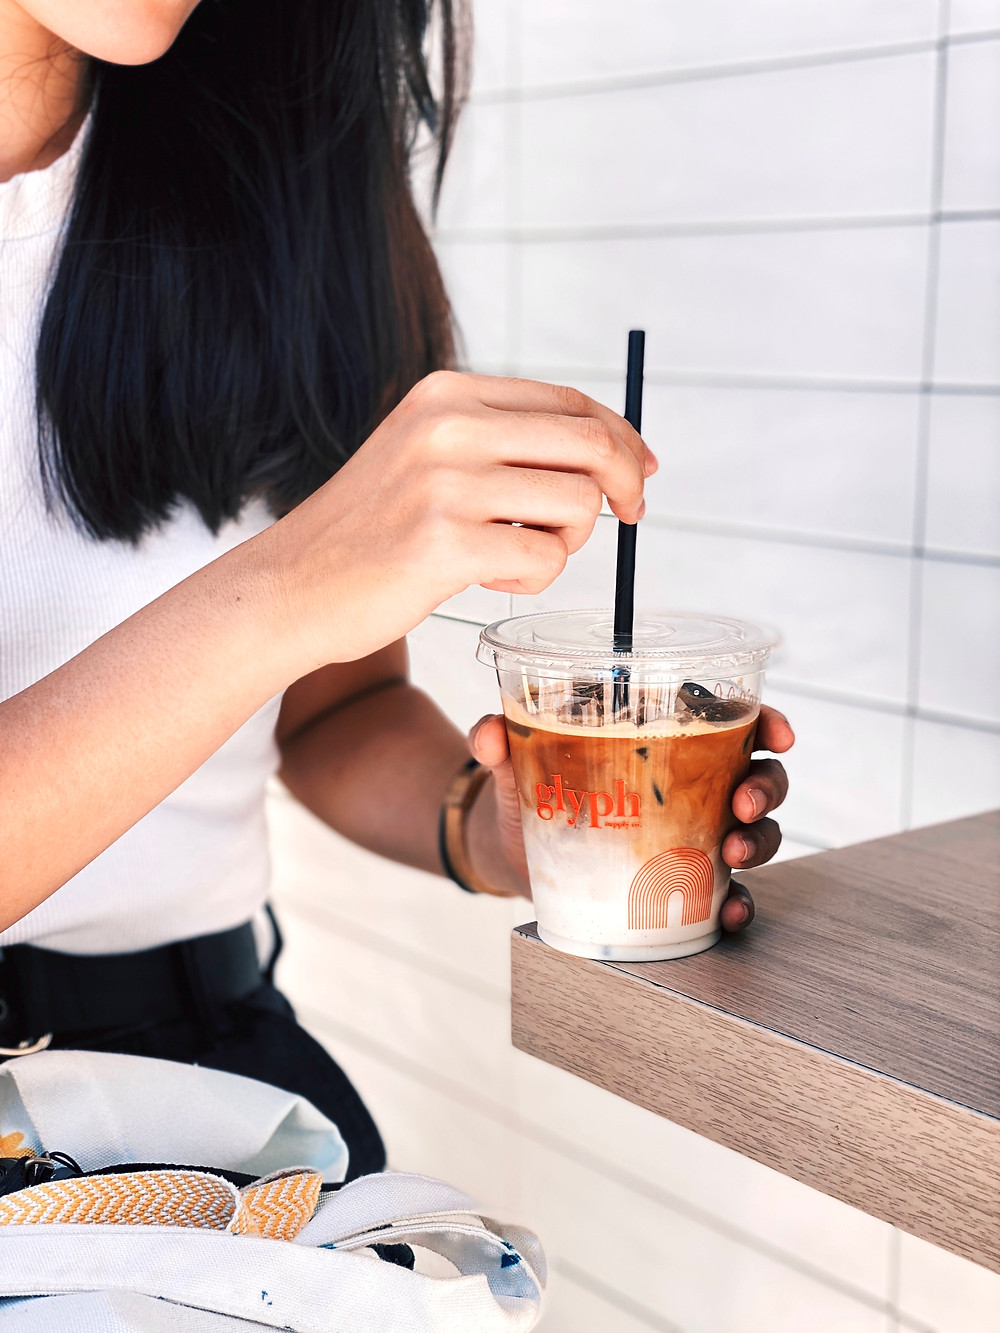 Cup of ice coffee